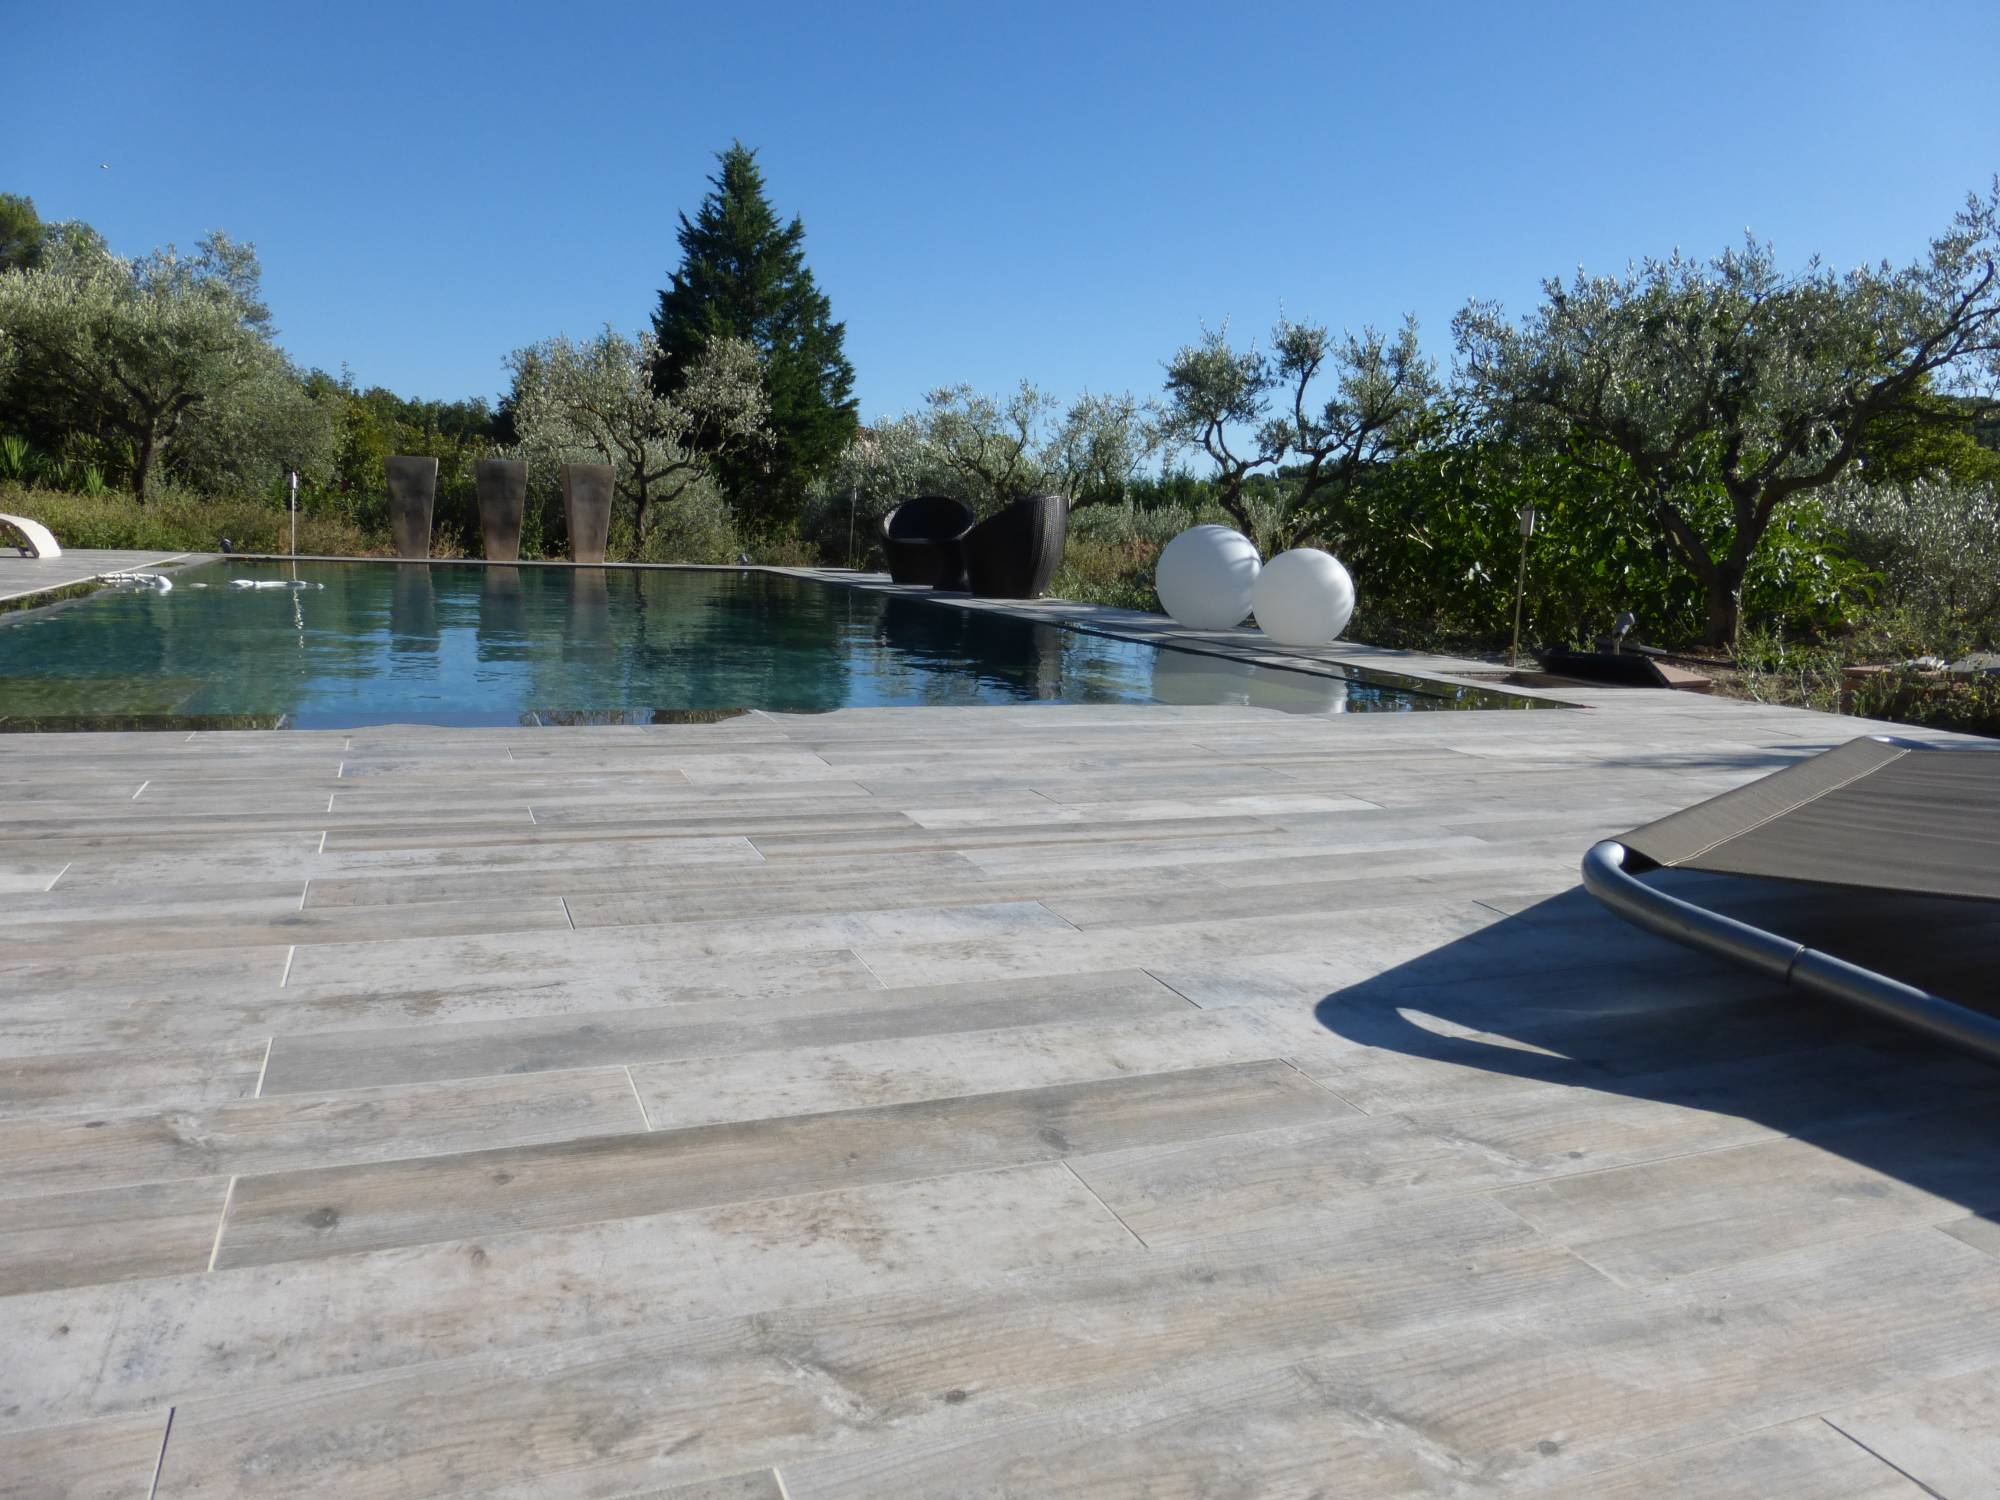 Piscine imitation bois eguilles carrelage int rieur et for Carrelage piscine